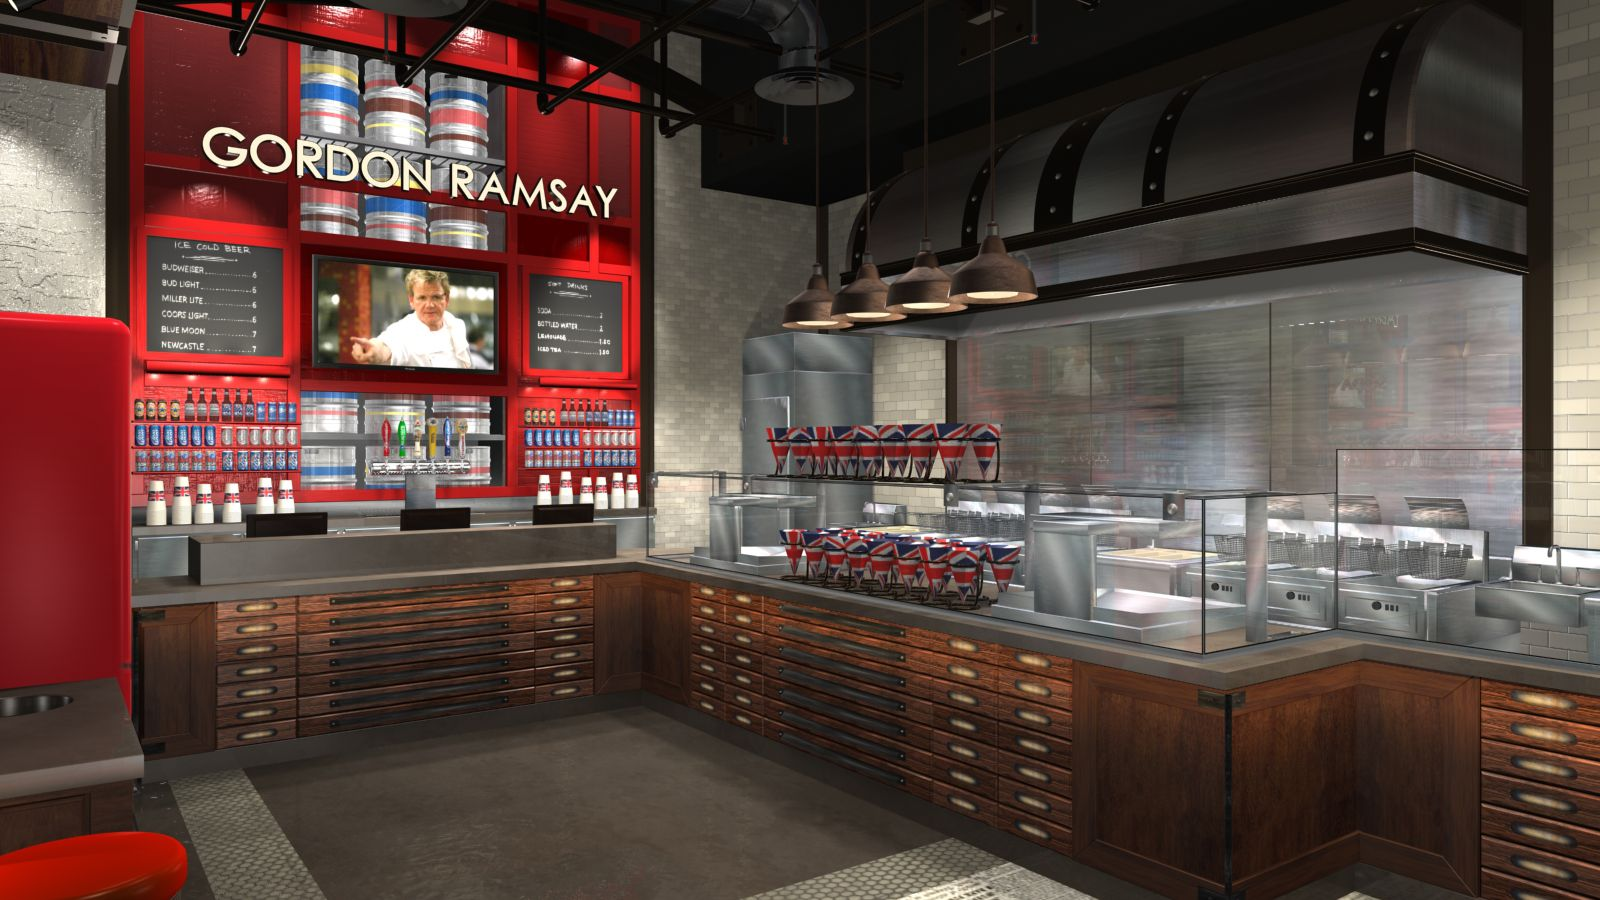 Confirmed: Gordon Ramsay's Fish & Chips to The Linq - Eater Vegas